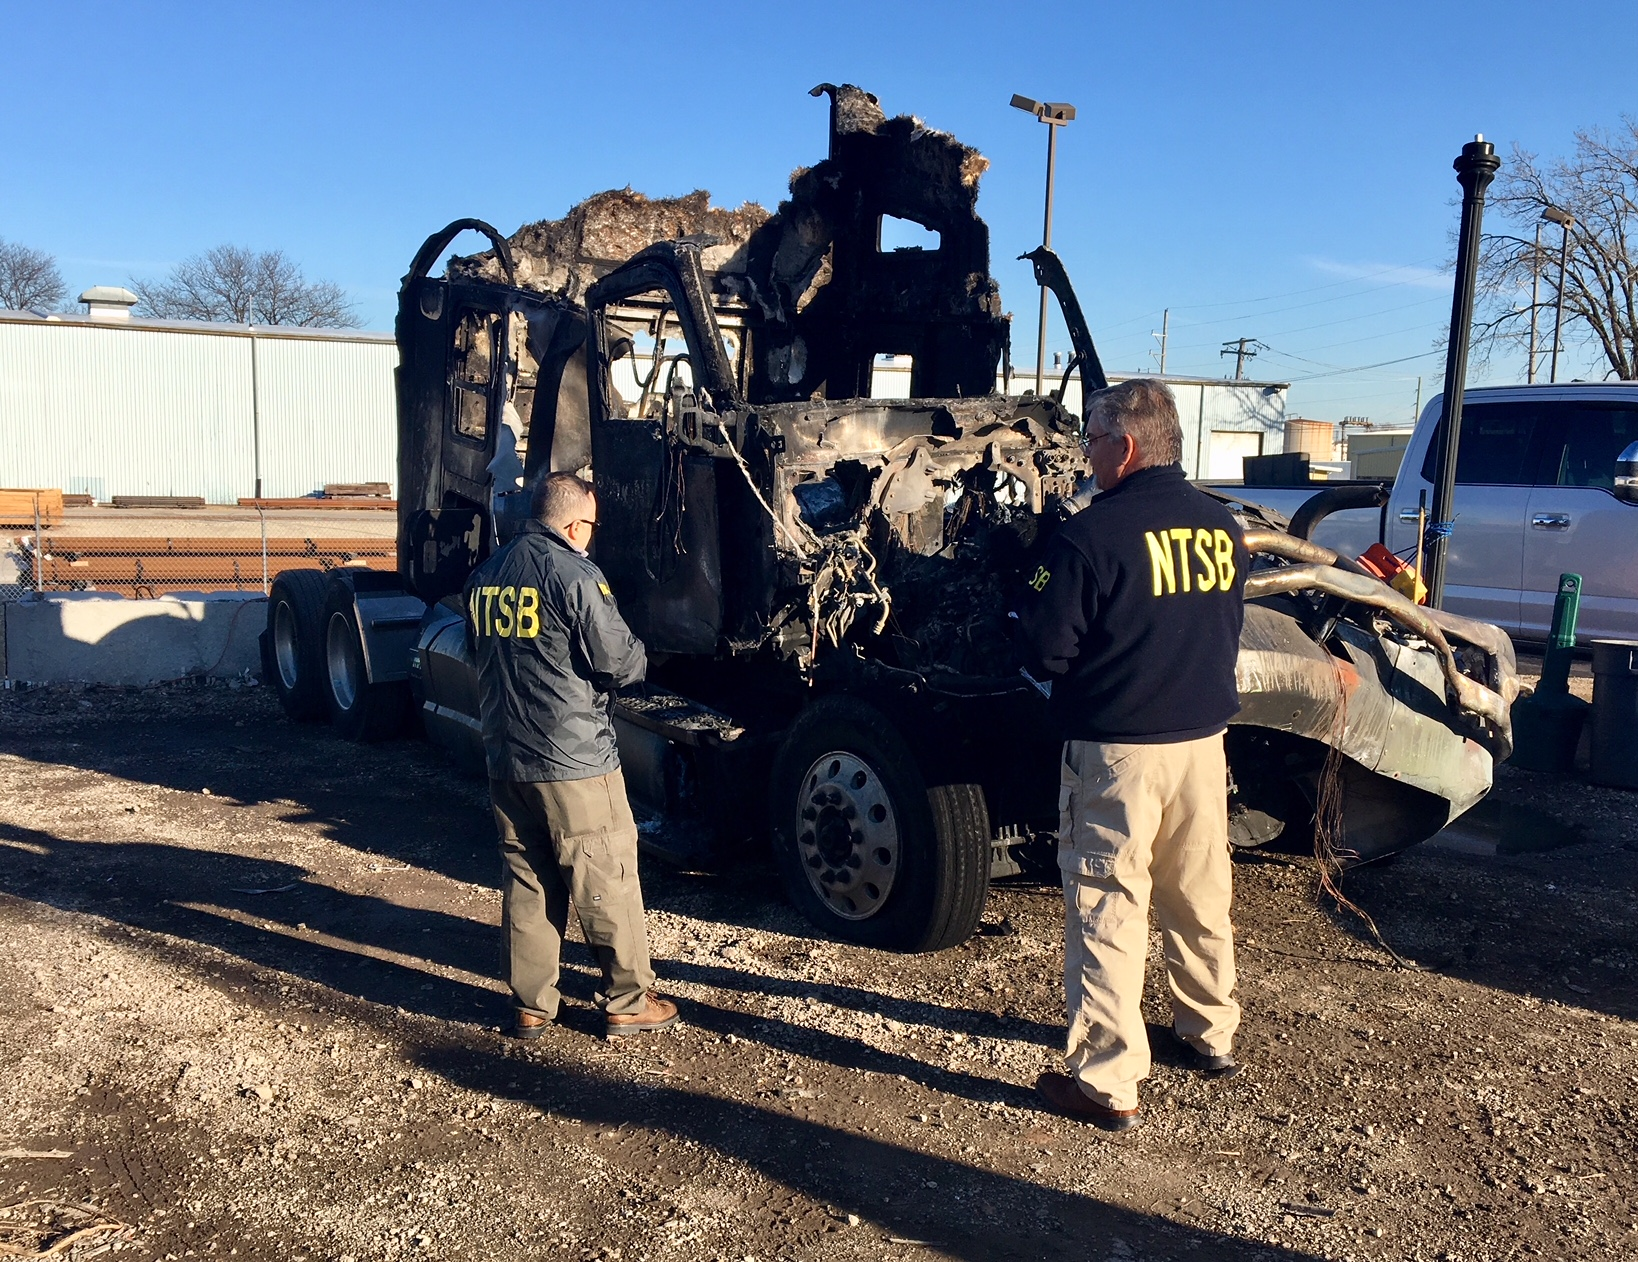 NTSB investigators examining the damaged and burnt 2016 Kenworth  truck-tractor (the Pioneer truck